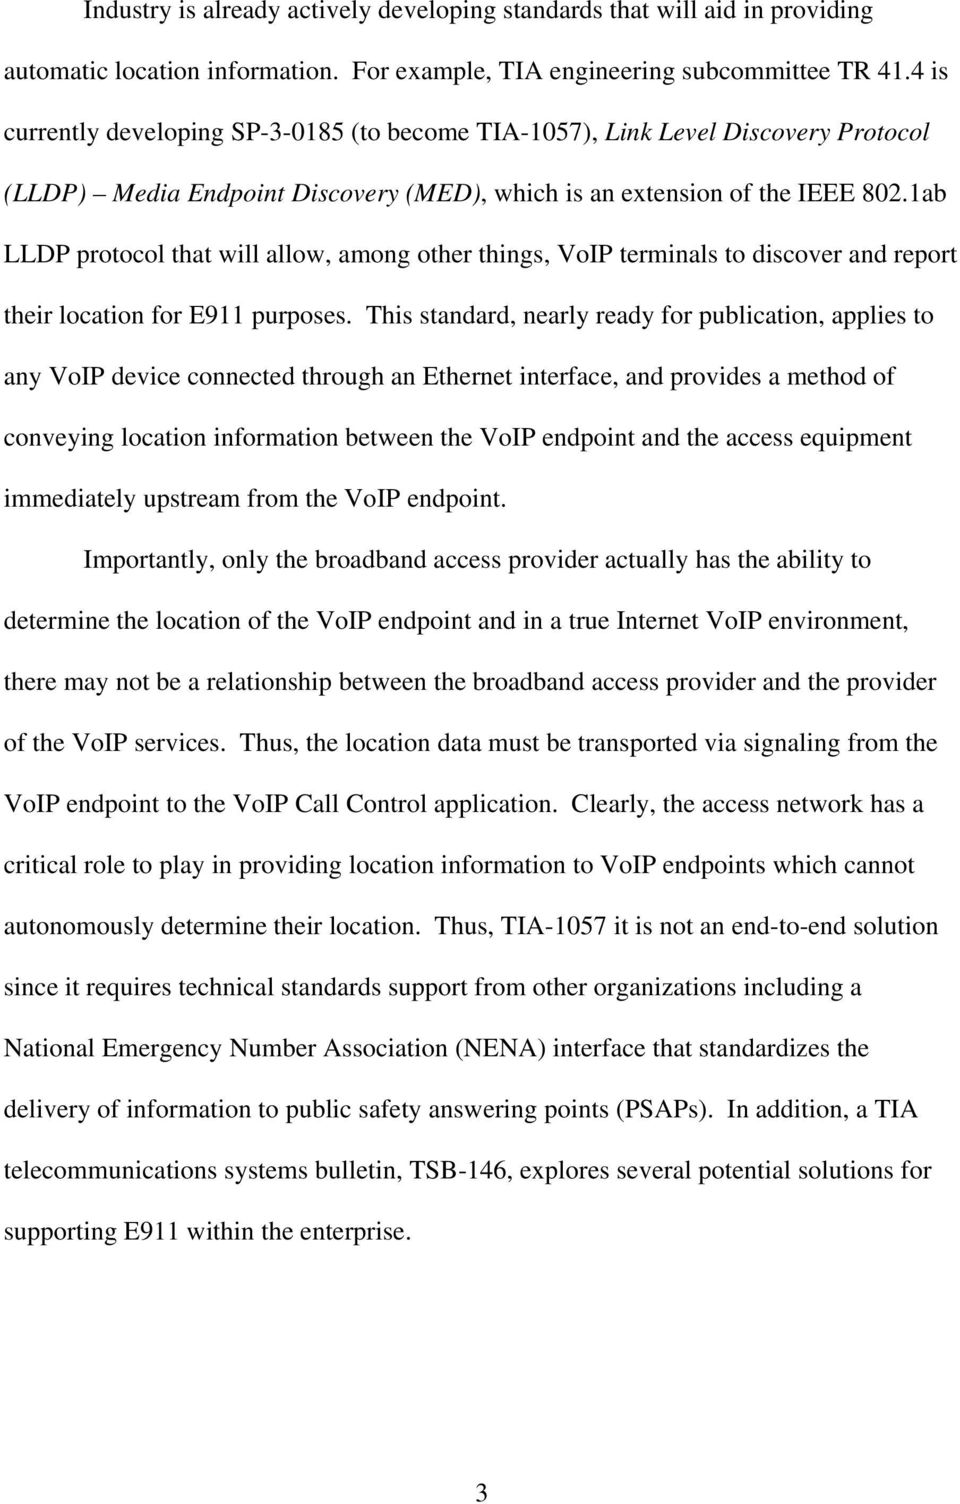 1ab LLDP protocol that will allow, among other things, VoIP terminals to discover and report their location for E911 purposes.